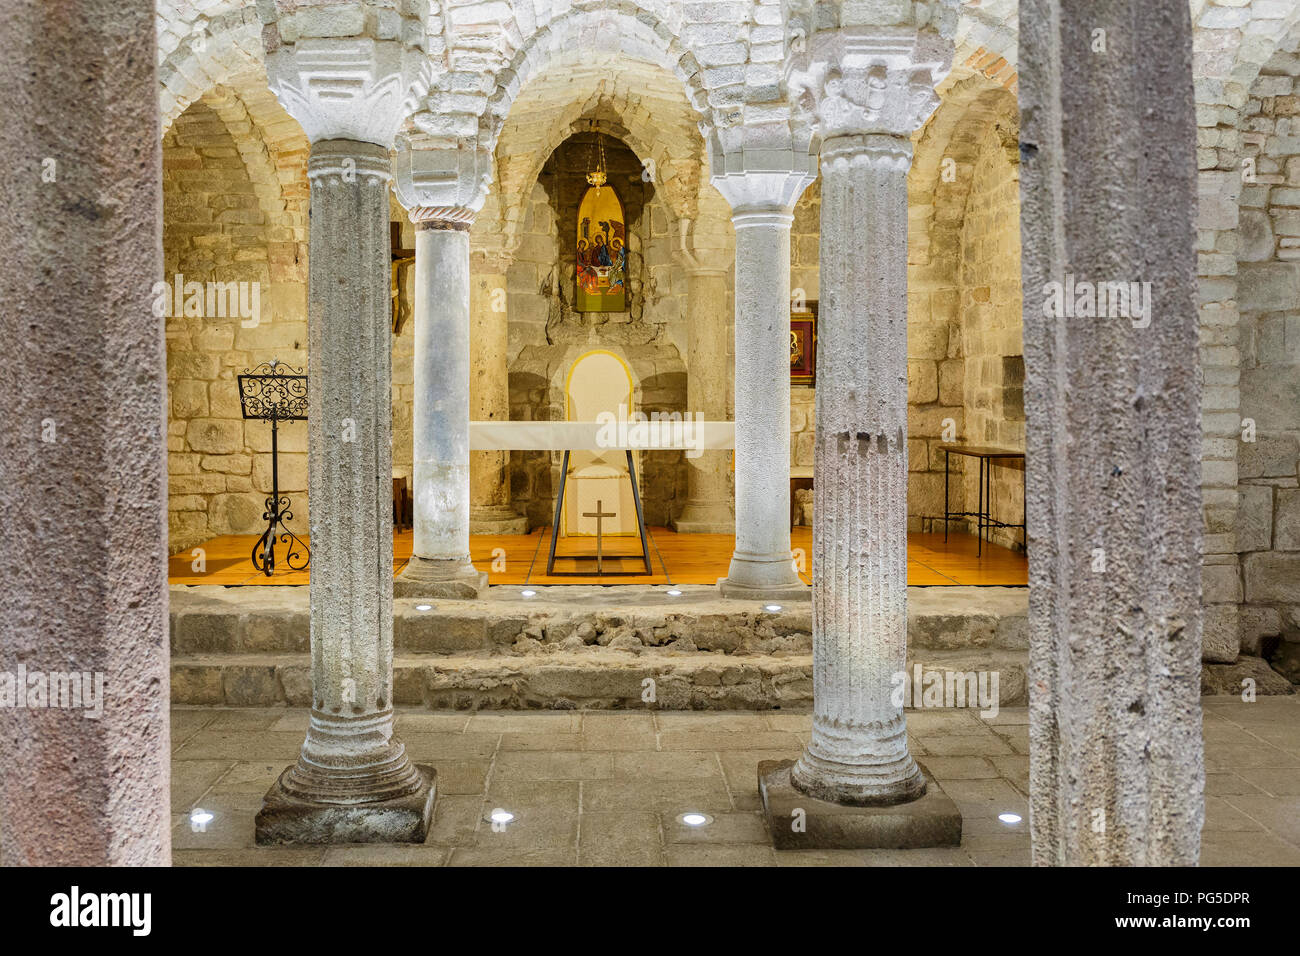 Altar in the old crypt - Stock Image